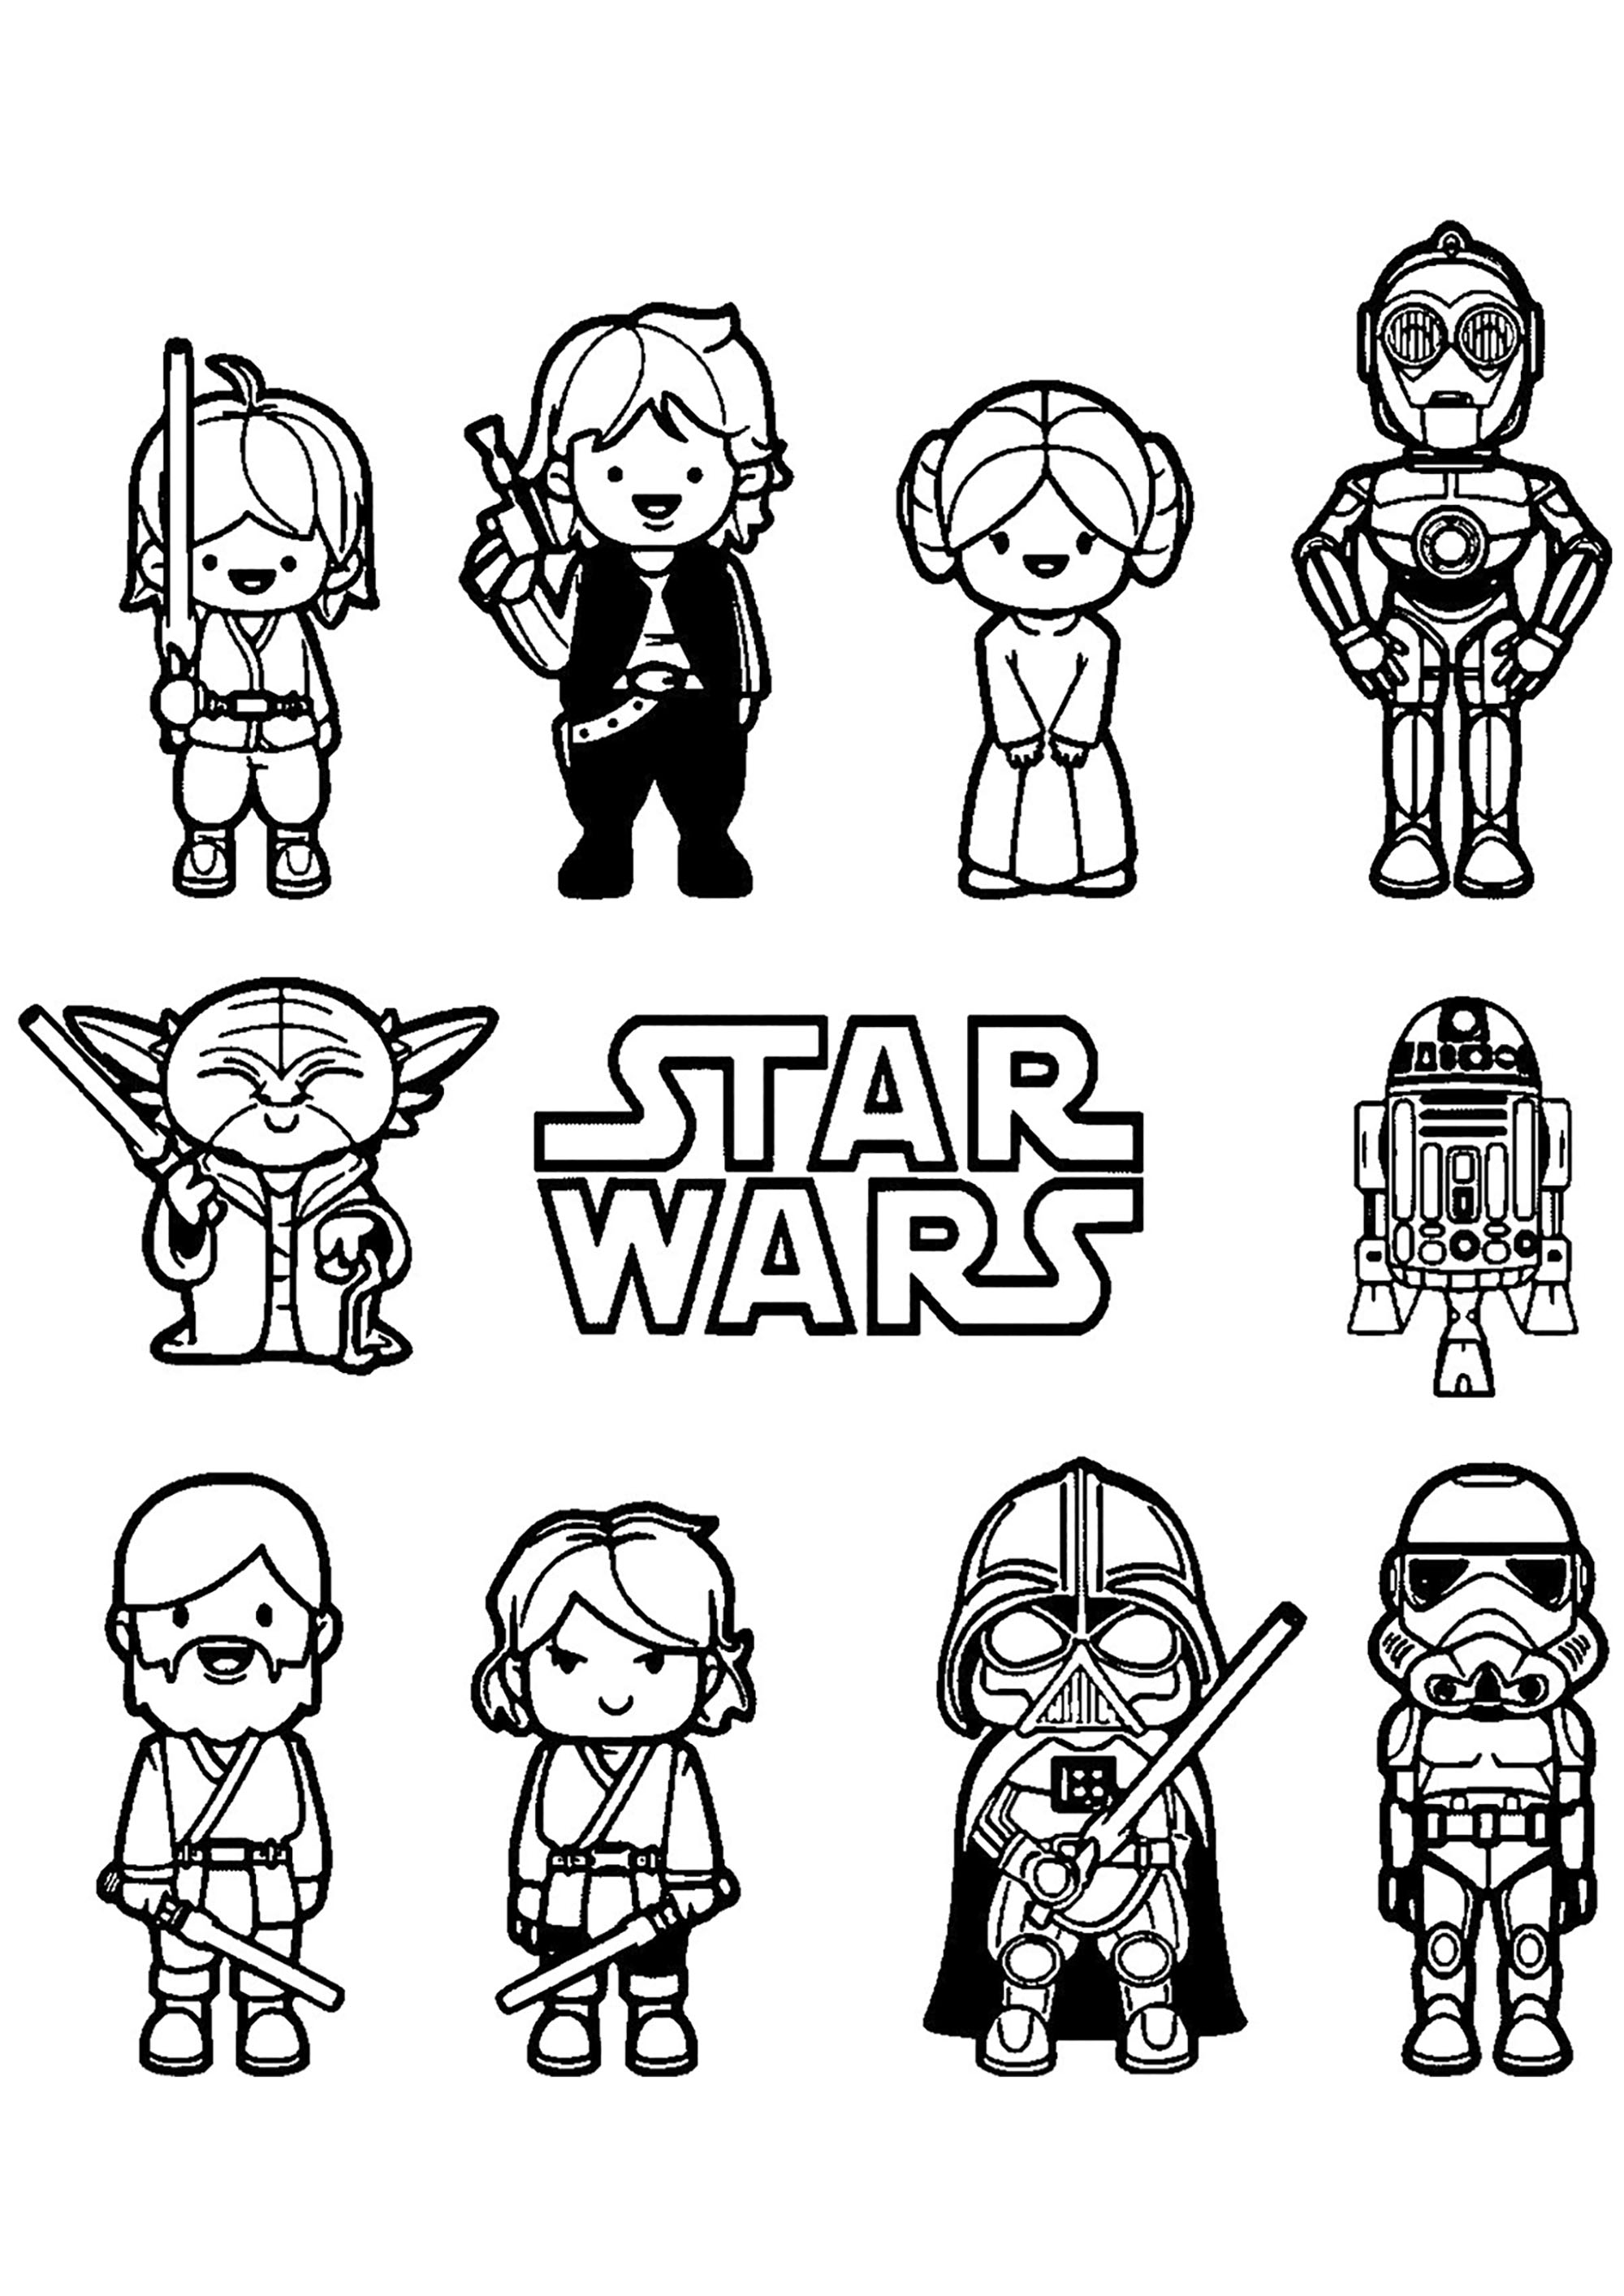 star wars coloring pages for kids star wars free to color for kids star wars kids coloring star kids coloring for pages wars